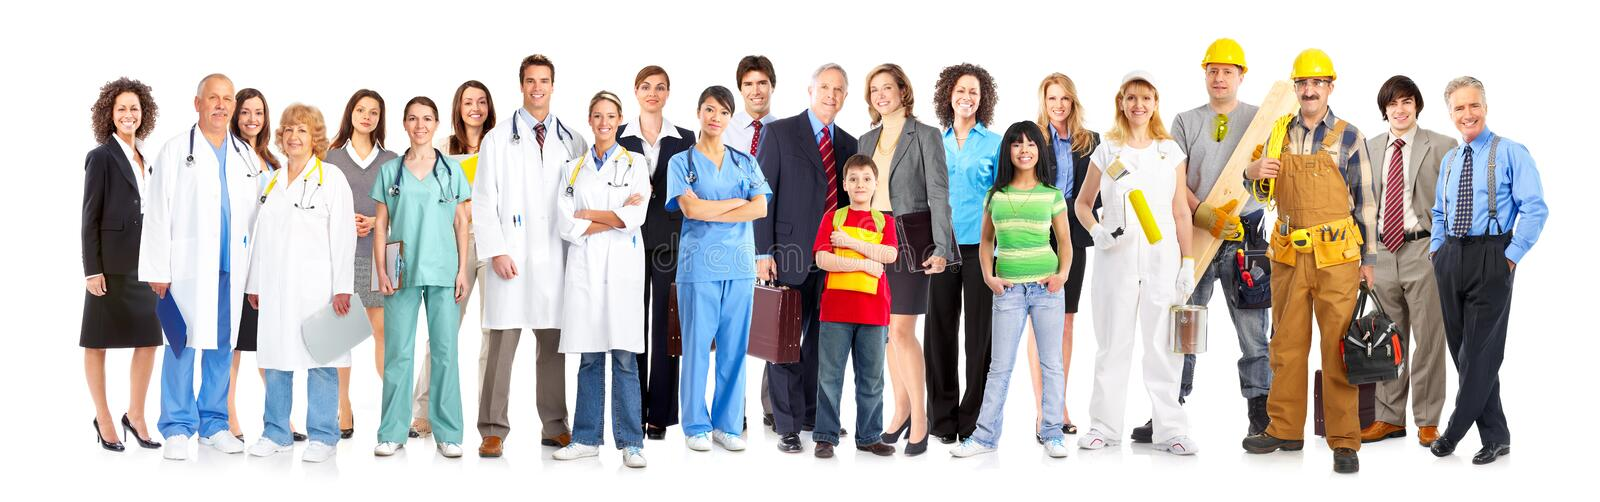 Workers People Royalty Free Stock Photos